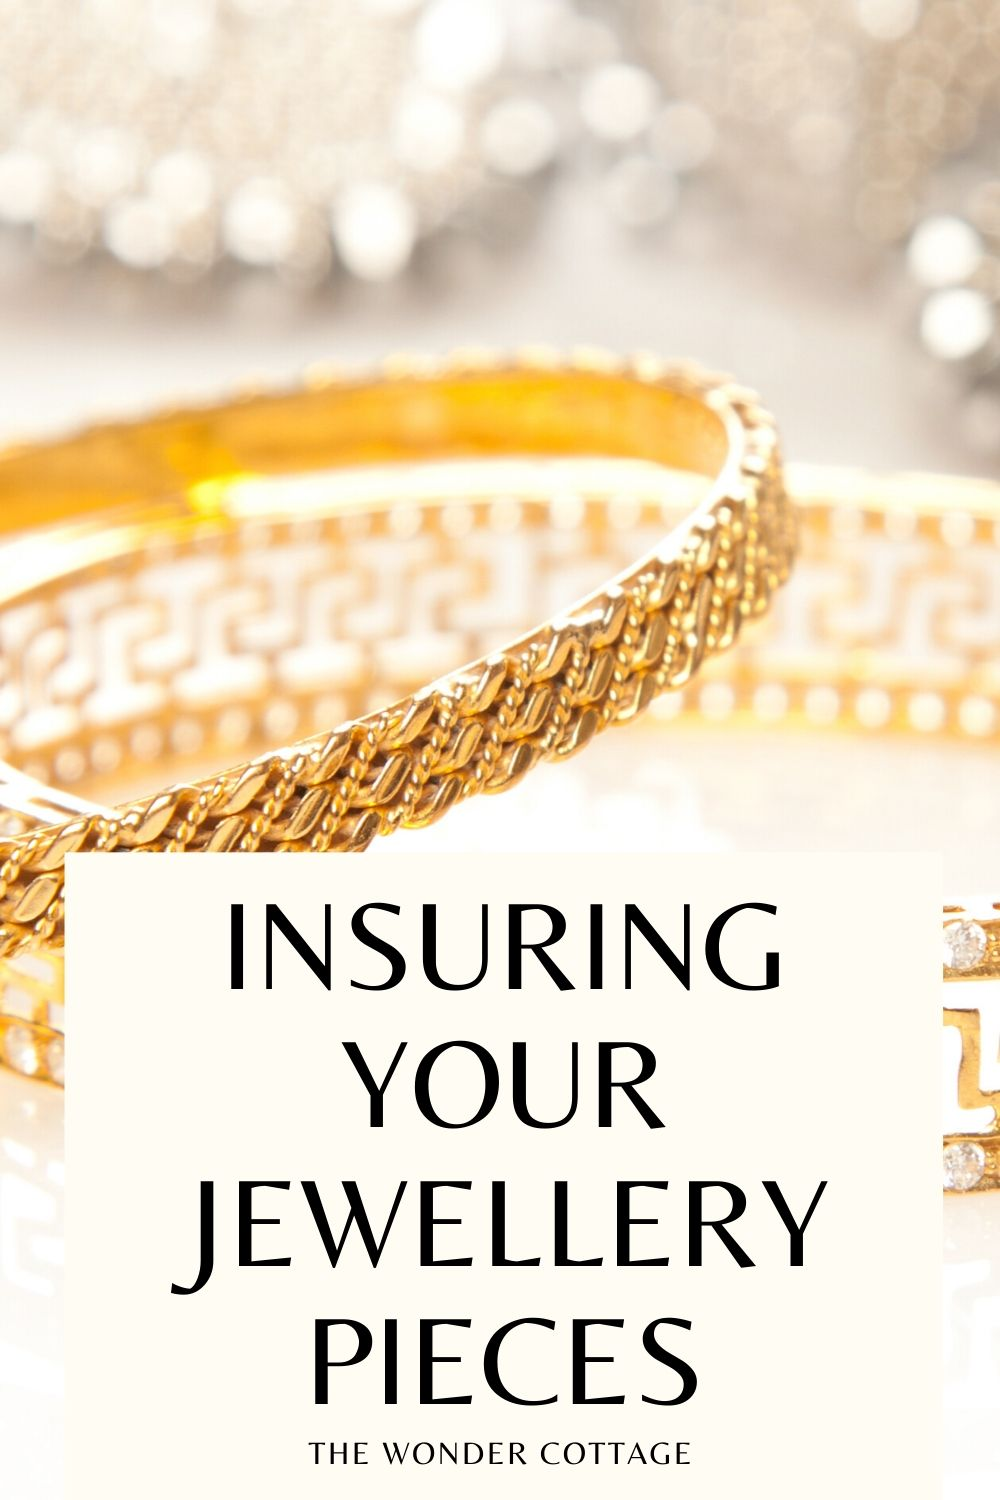 Insuring your jewellery pieces